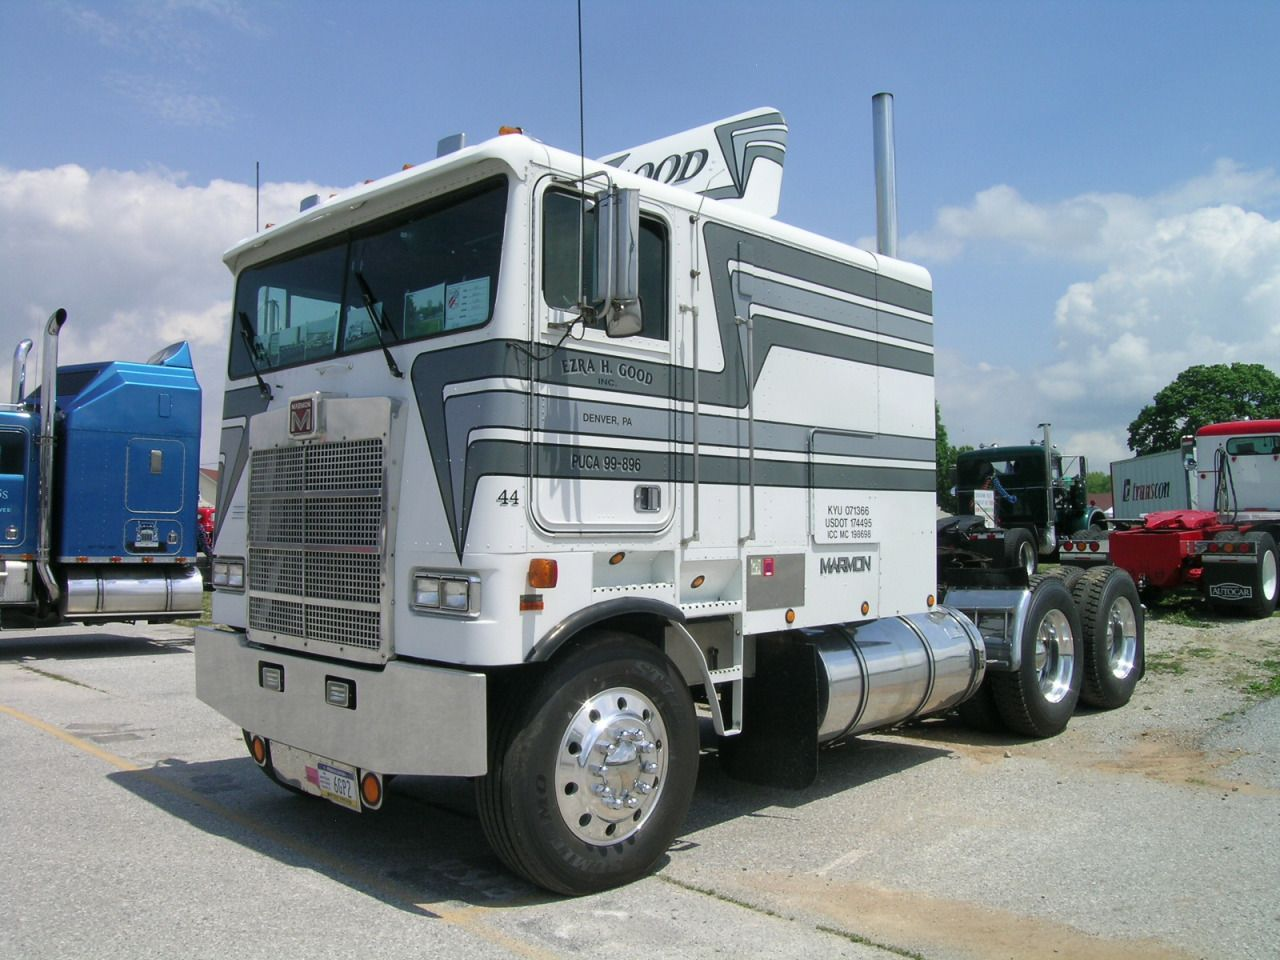 coe Marmon classic hand built in Texas | big rig | Pinterest ...